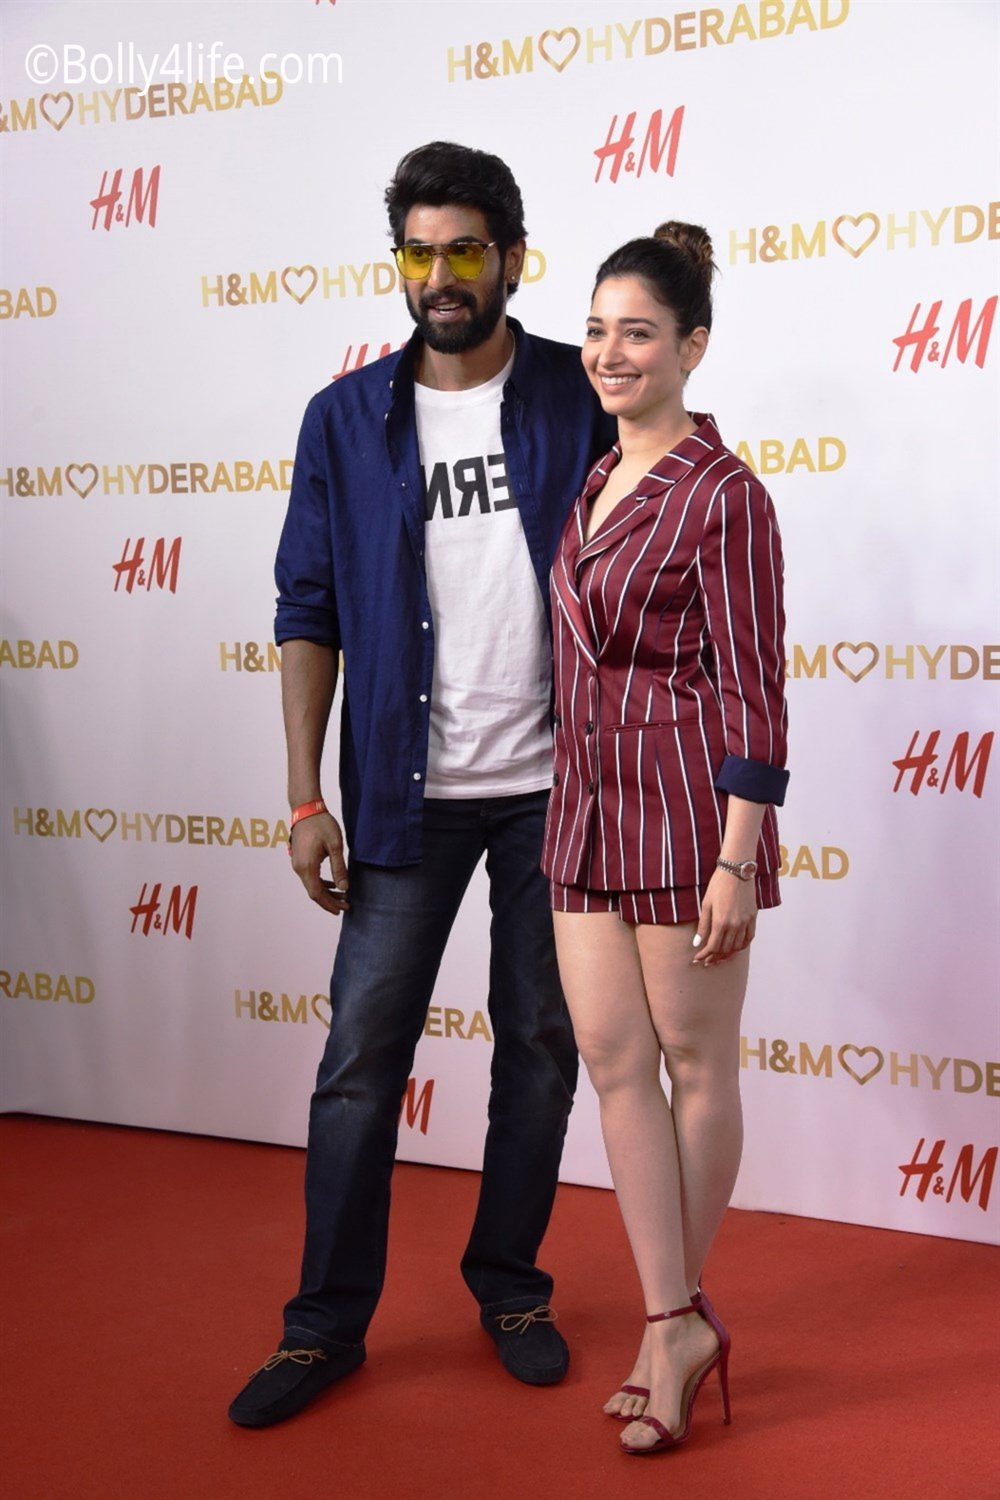 hm-hyderabad-grand-opening-at-inorbit-mall-1af018e.jpg